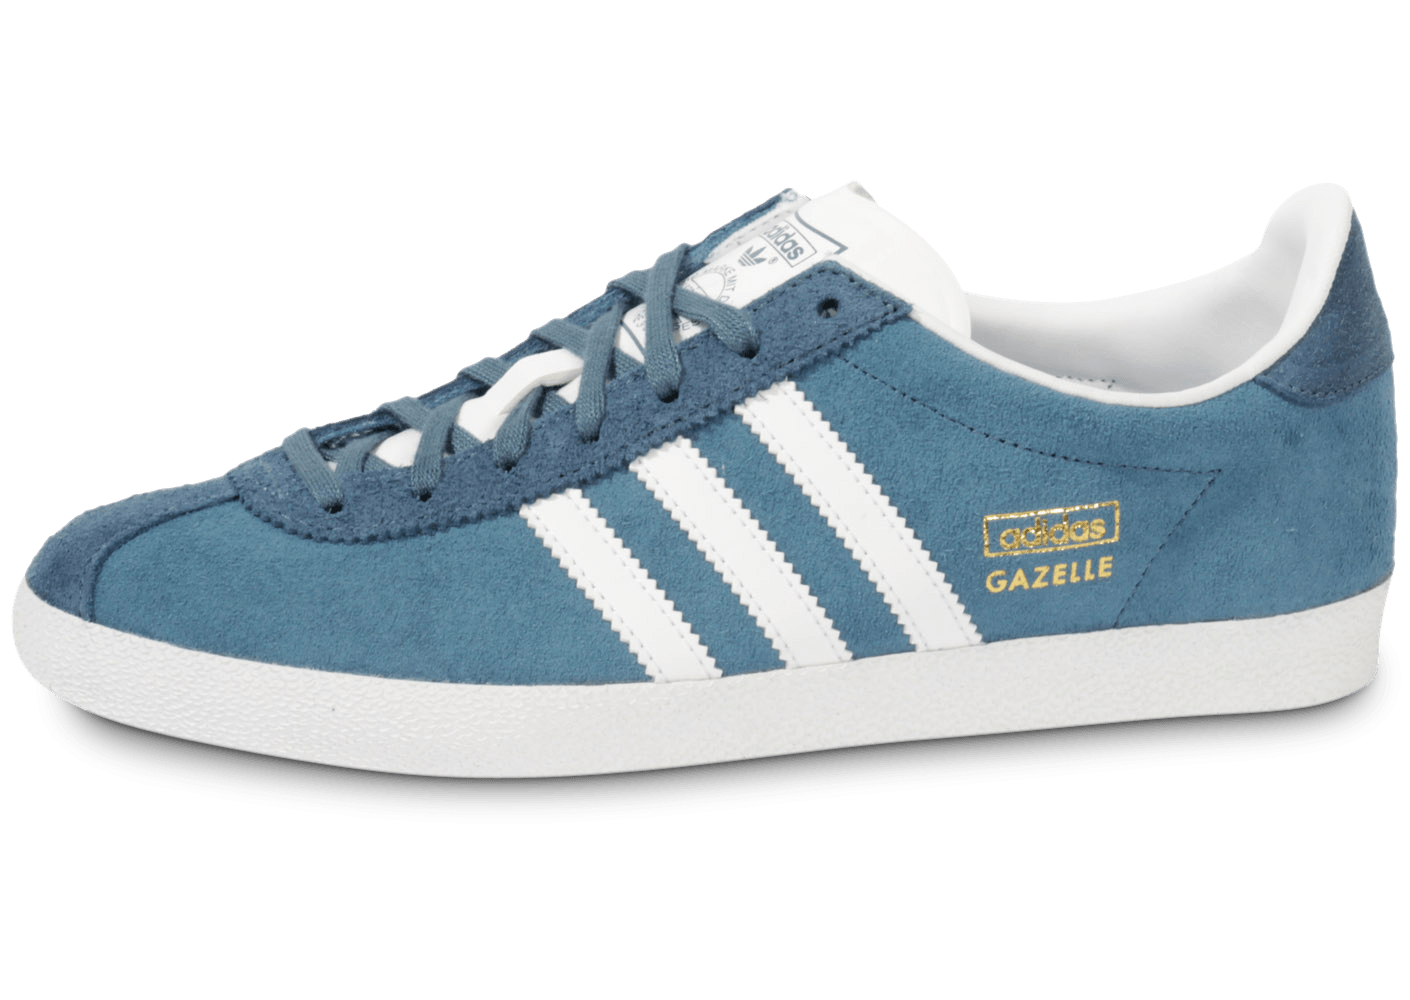 100% genuine free shipping skate shoes adidas Gazelle Og Bleue - Chaussures Baskets homme - Chausport